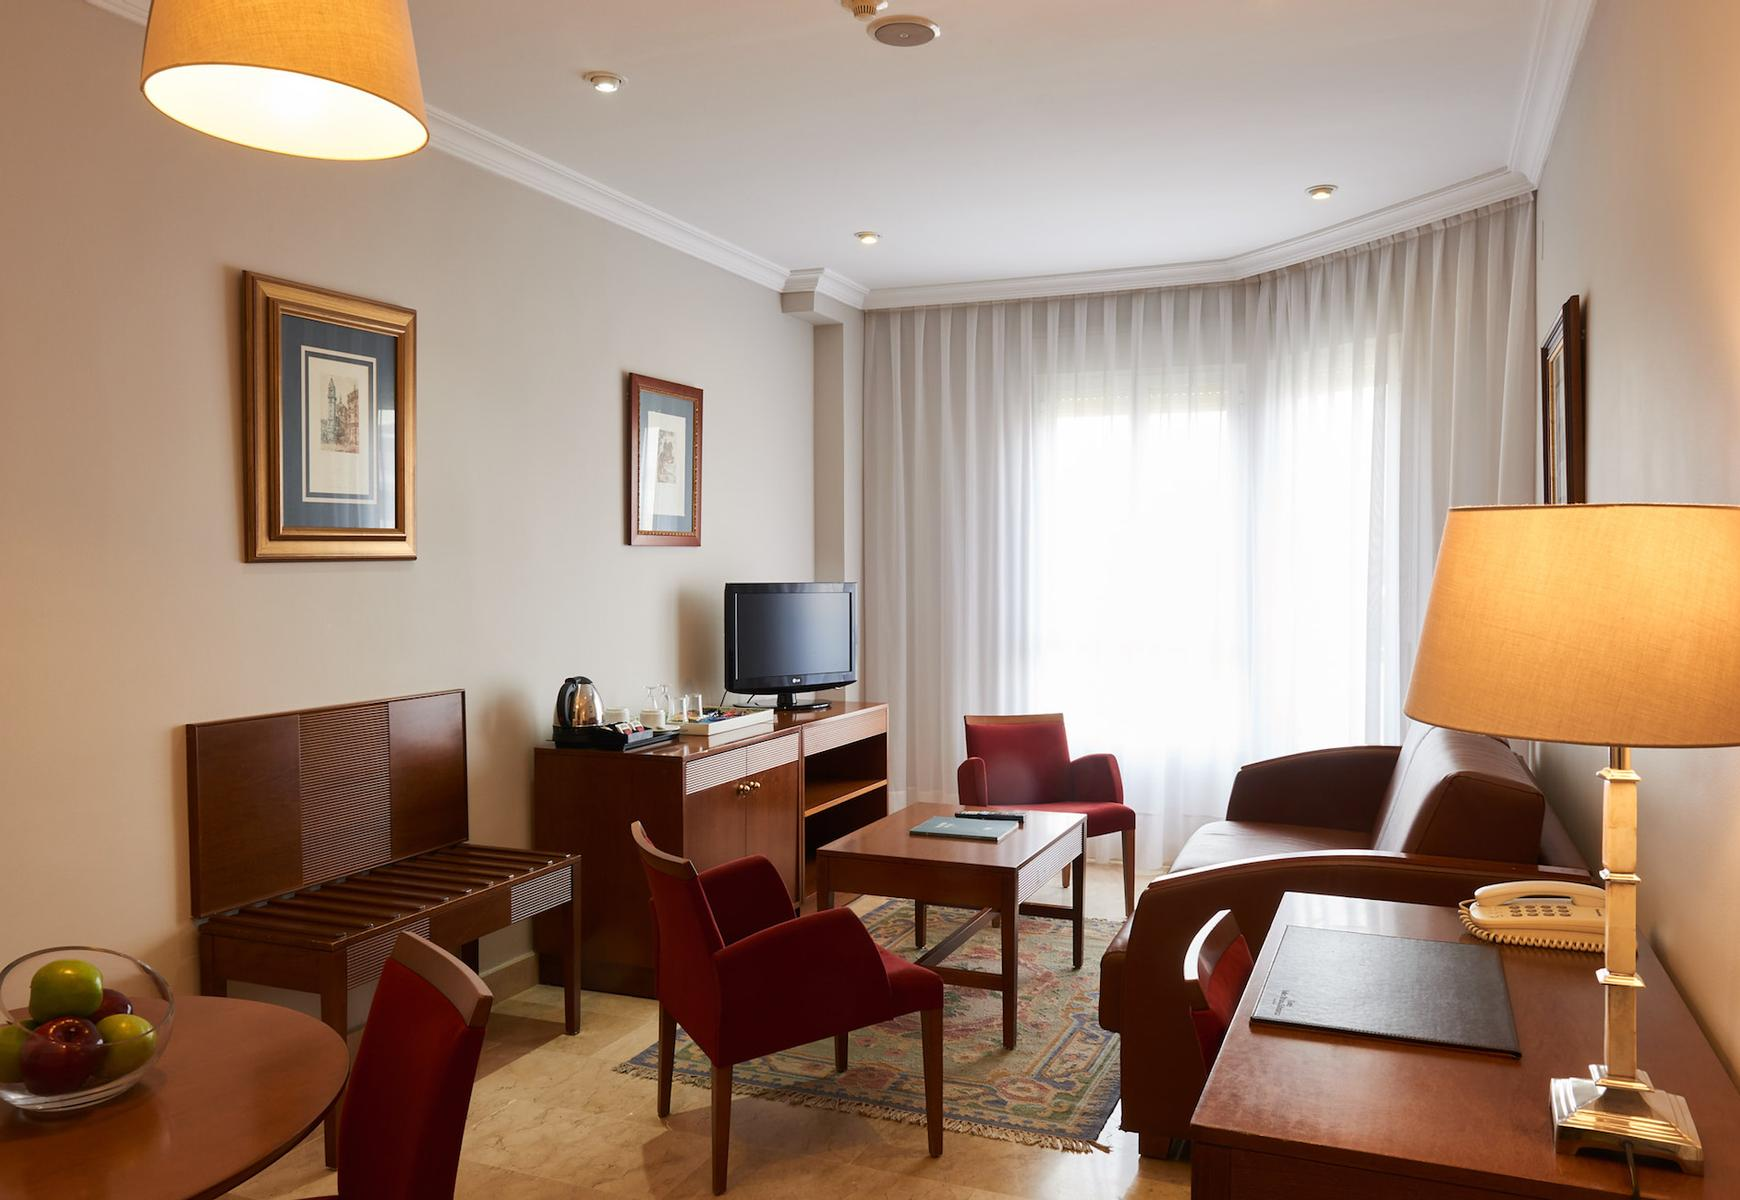 Hotel Suites Barrio de Salamanca | Madrid | Accommodation 03 - 3